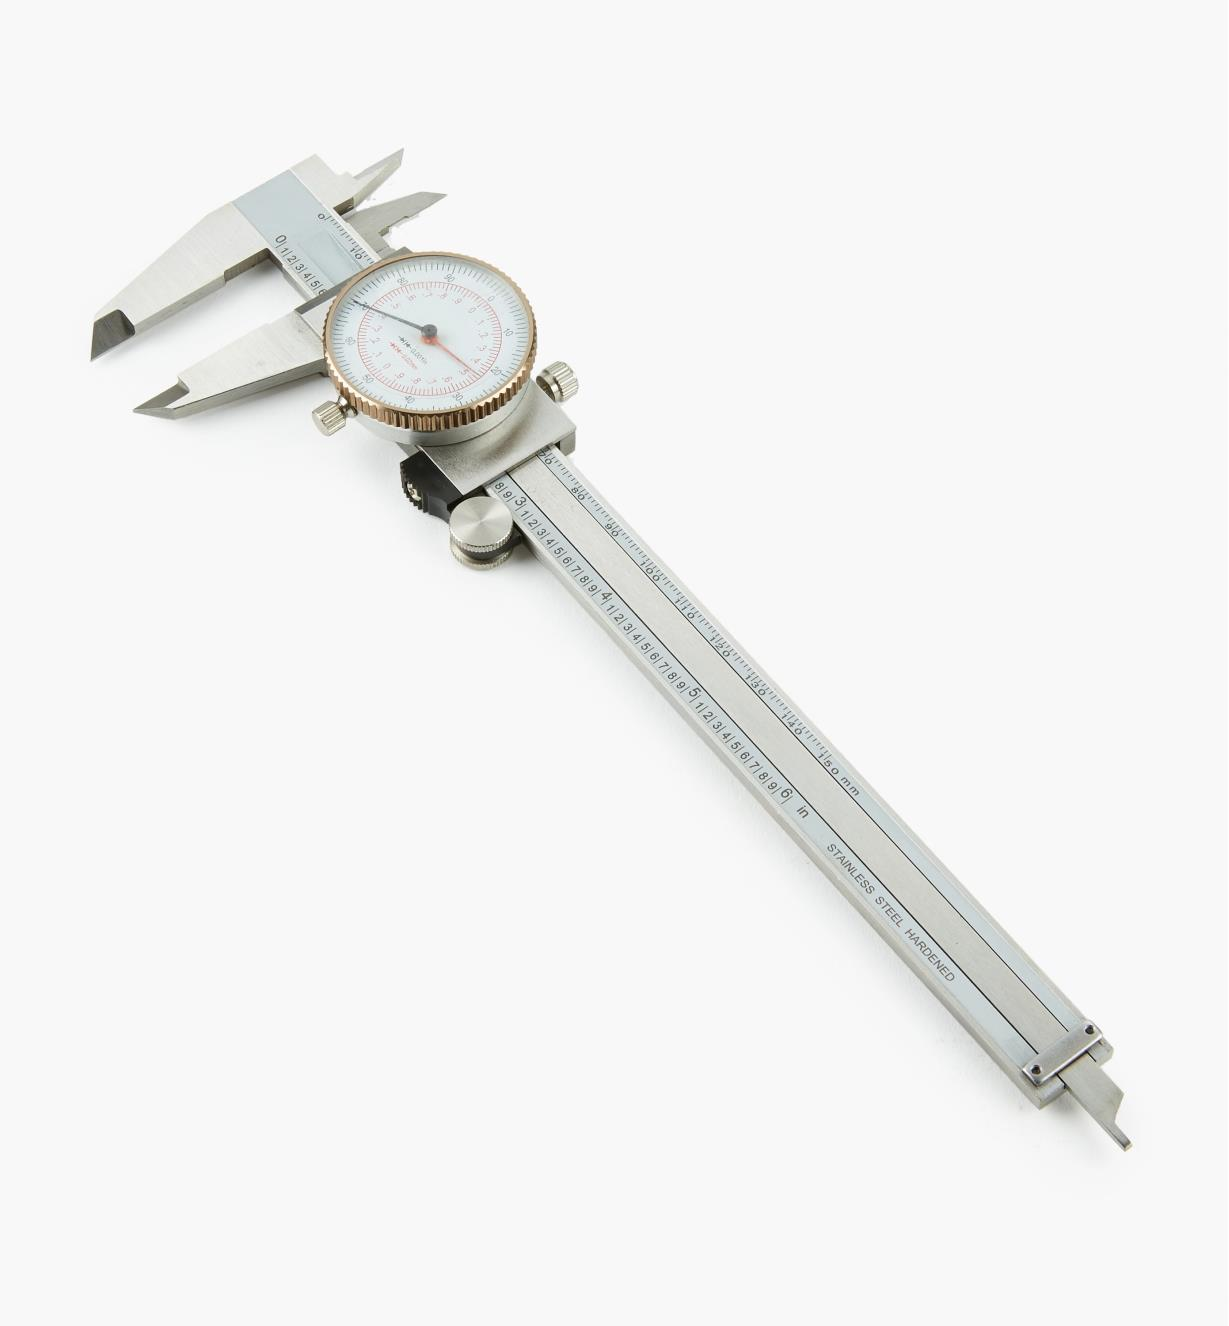 "88N6205 - 6"" Combination Dial Caliper"